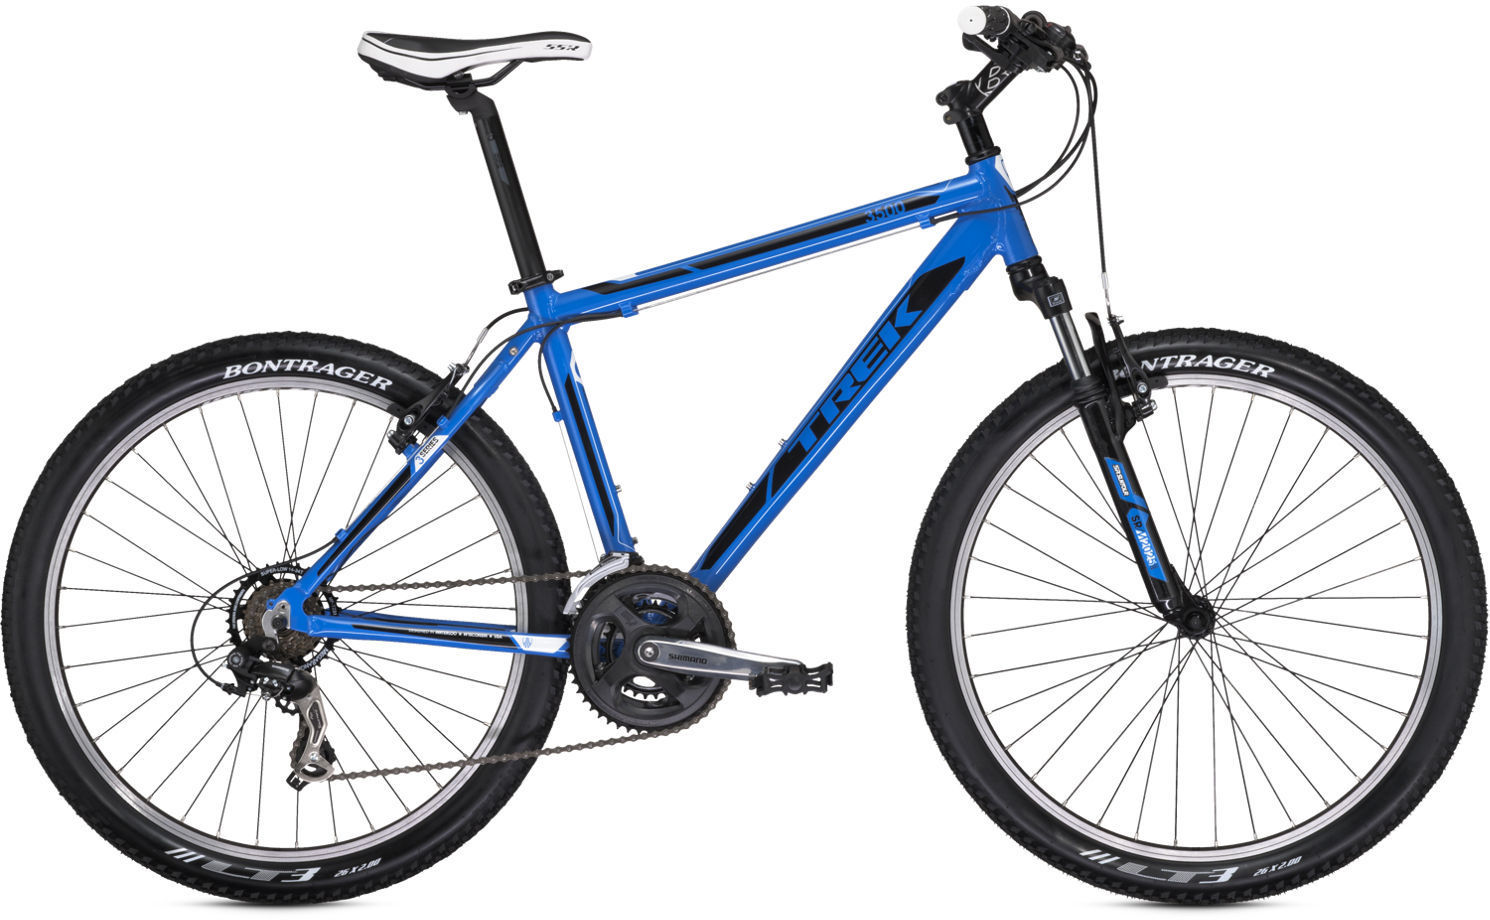 25abf2b4733 Trek 3500 2013 review - The Bike List